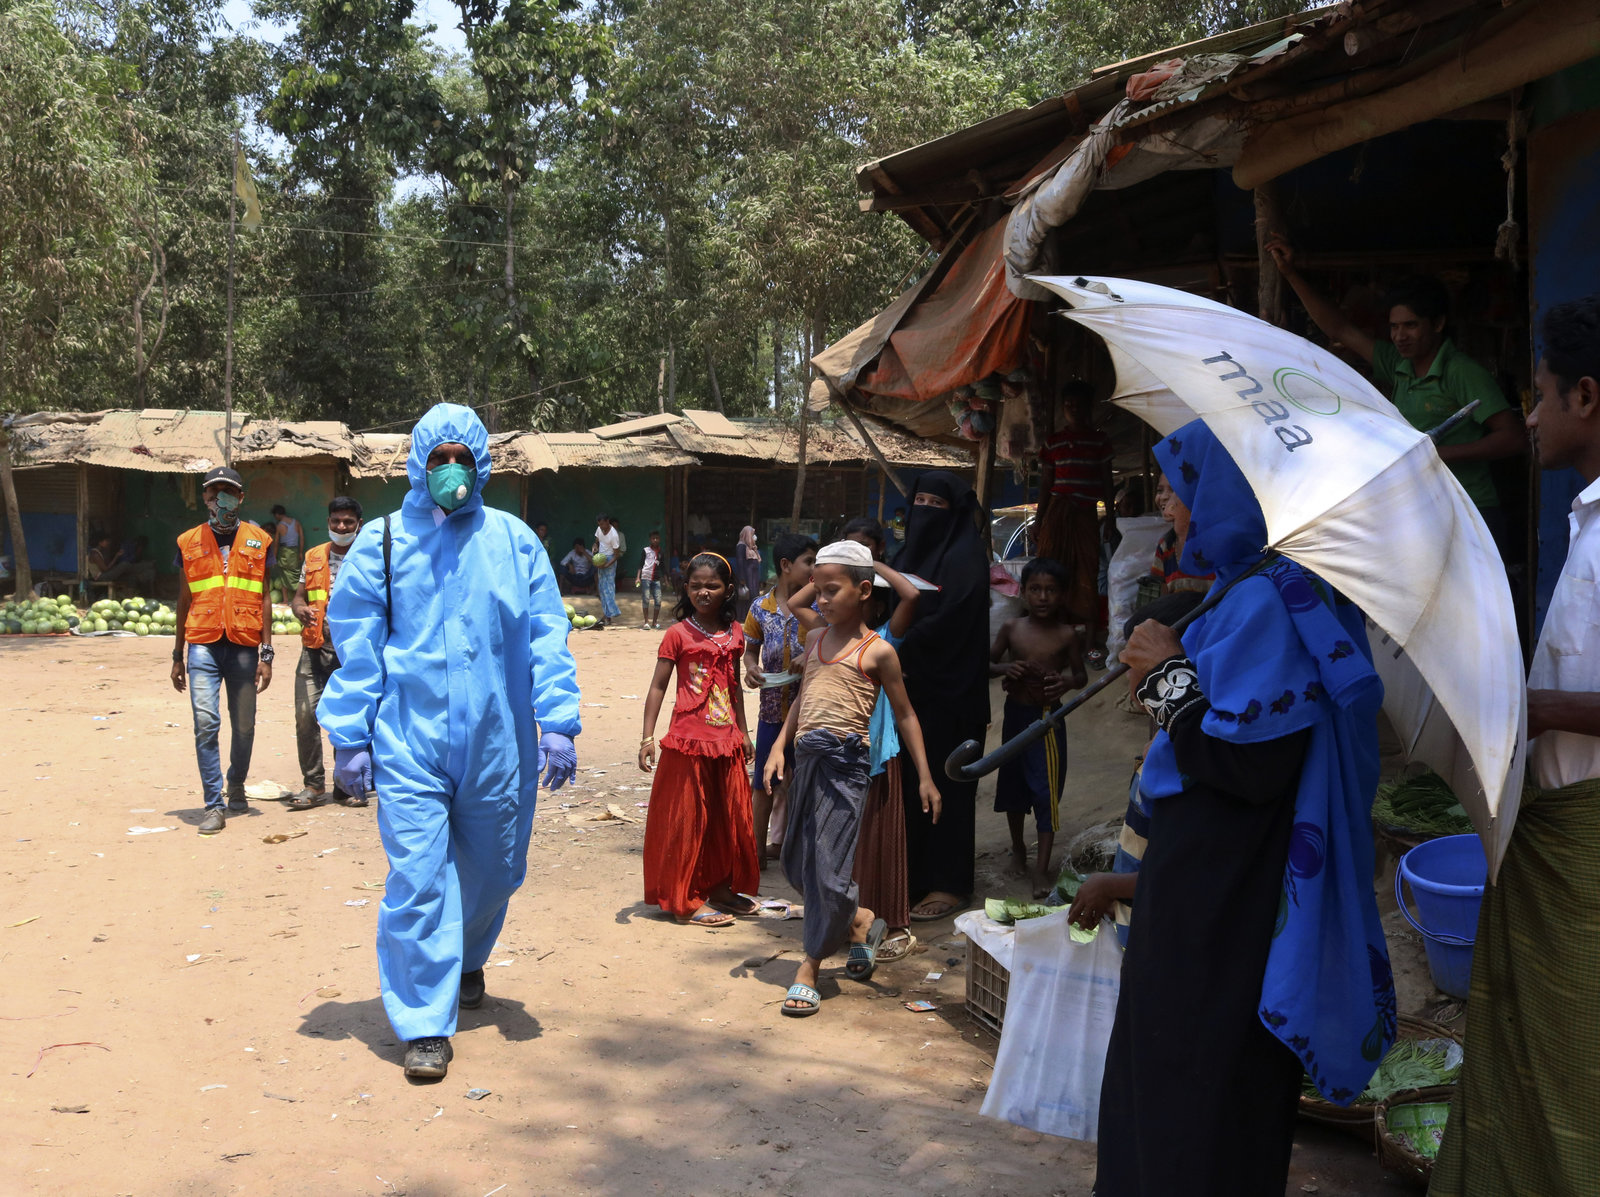 A health worker wearing personal protective equipment in the Kutupalong Rohingya refugee camp in Cox's Bazar, Bangladesh, last month. On Thursday, Bangladesh reported the area's first confirmed coronavirus infections. Shafiqur Rahman/AP